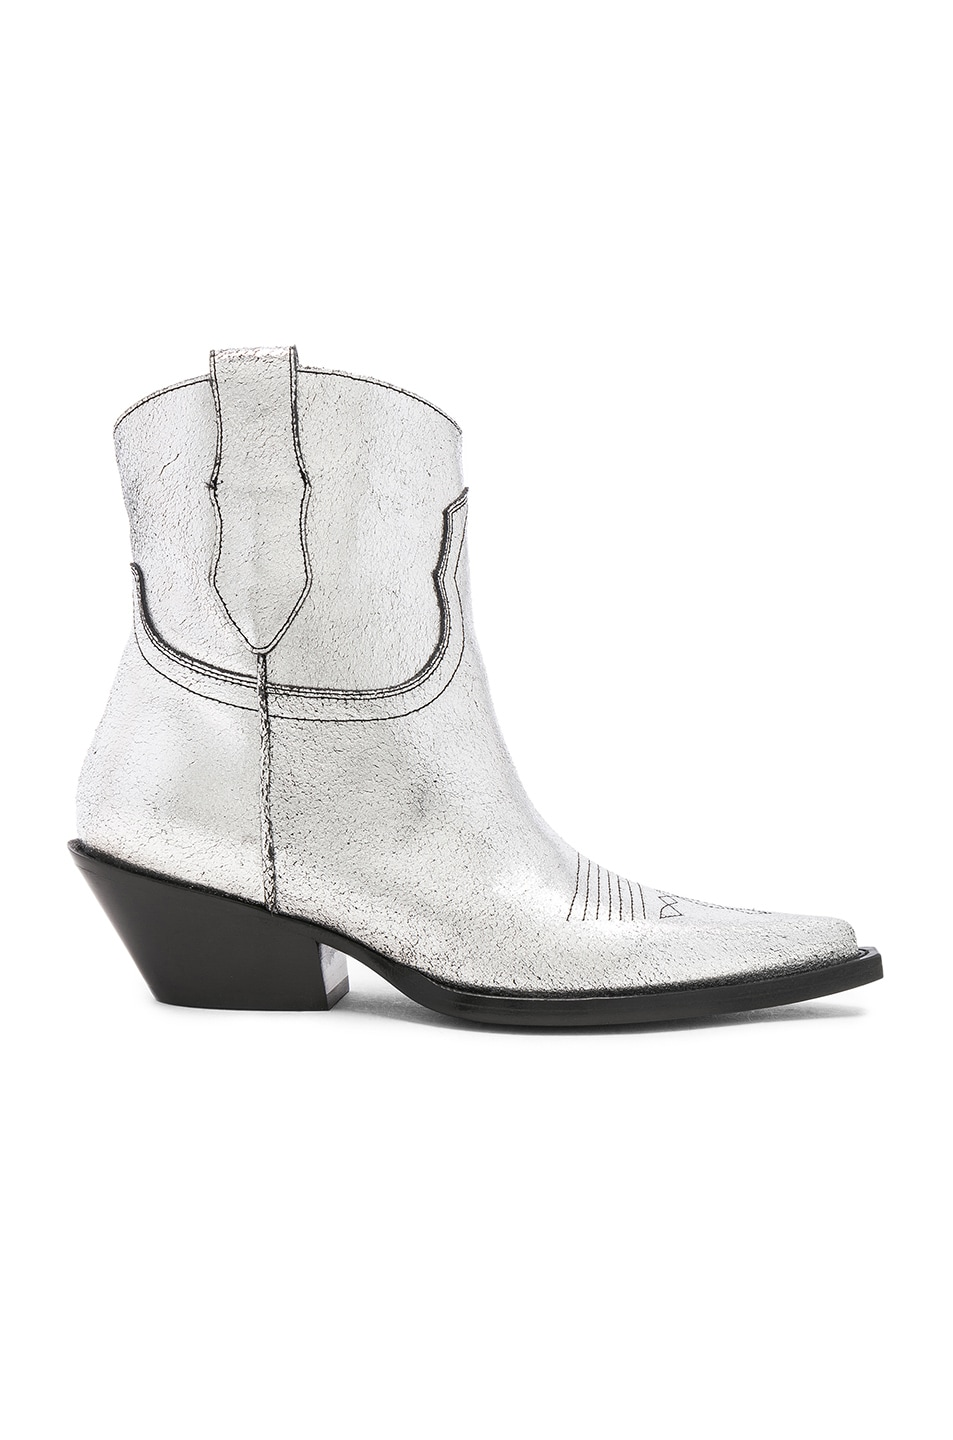 Image 1 of Maison Margiela Metallic Short Western Boots in Silver Birch & Black